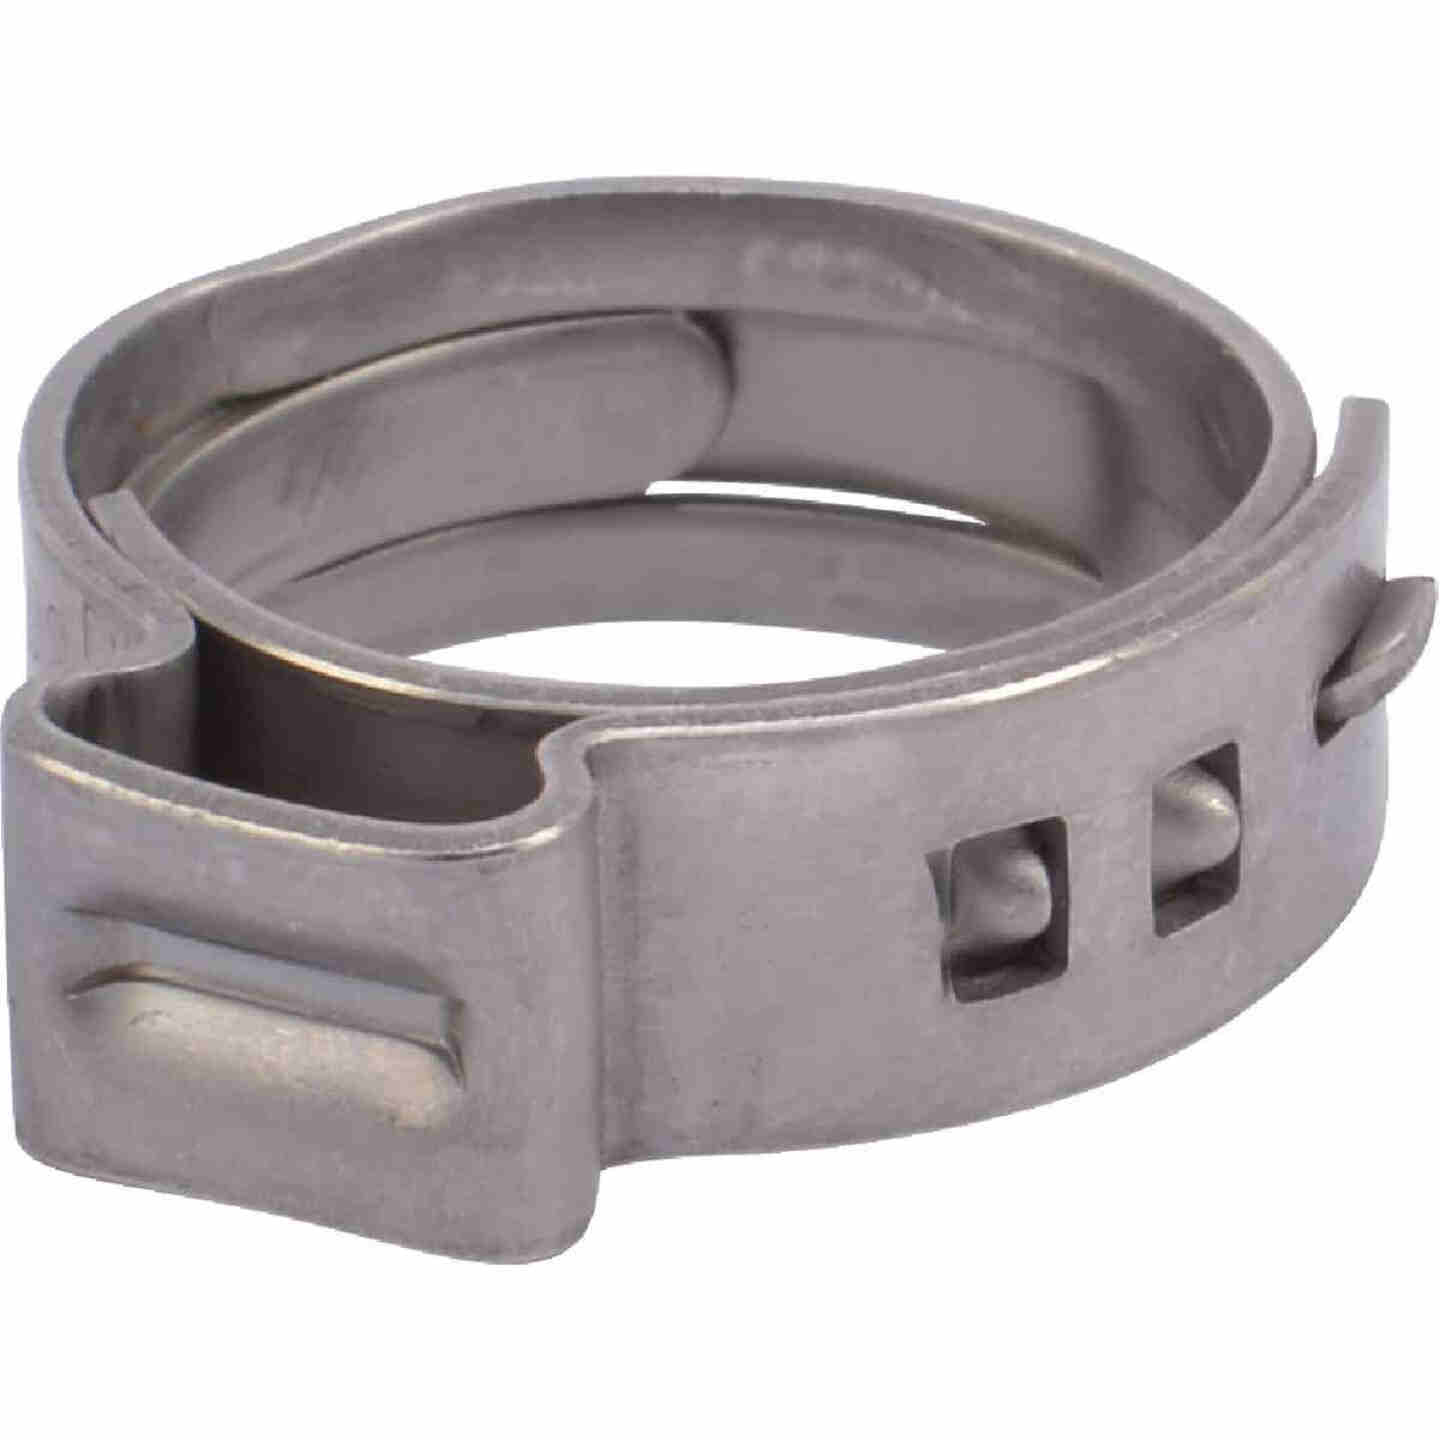 SharkBite 1/2 In. Stainless Steel PEX Cinch Clamps Image 1